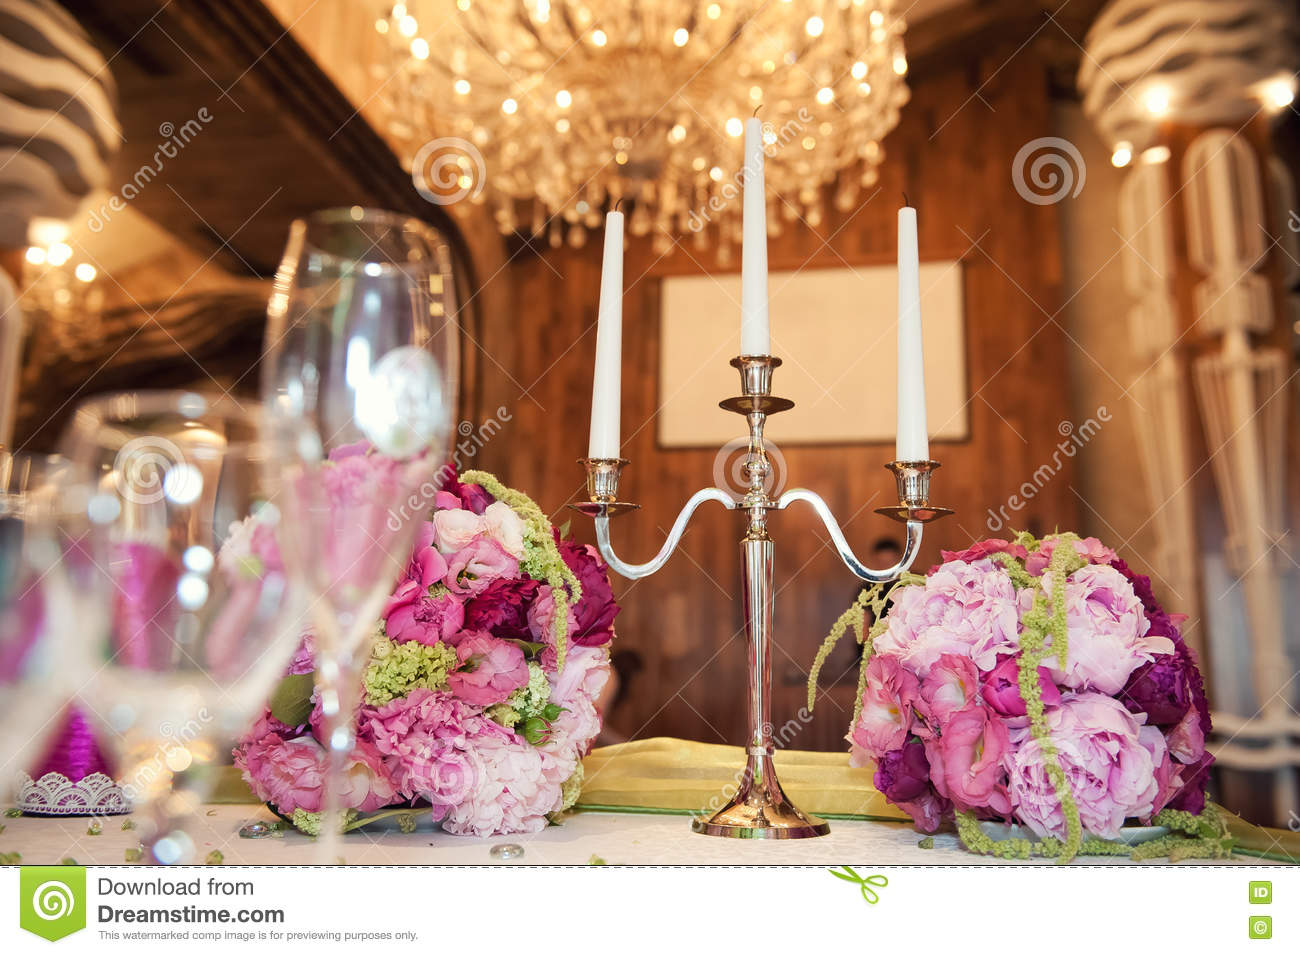 Gorgeous Flower Arrangement At The Wedding Table And Candleholder For Three Candles On Background Of Elegant Chandeliers